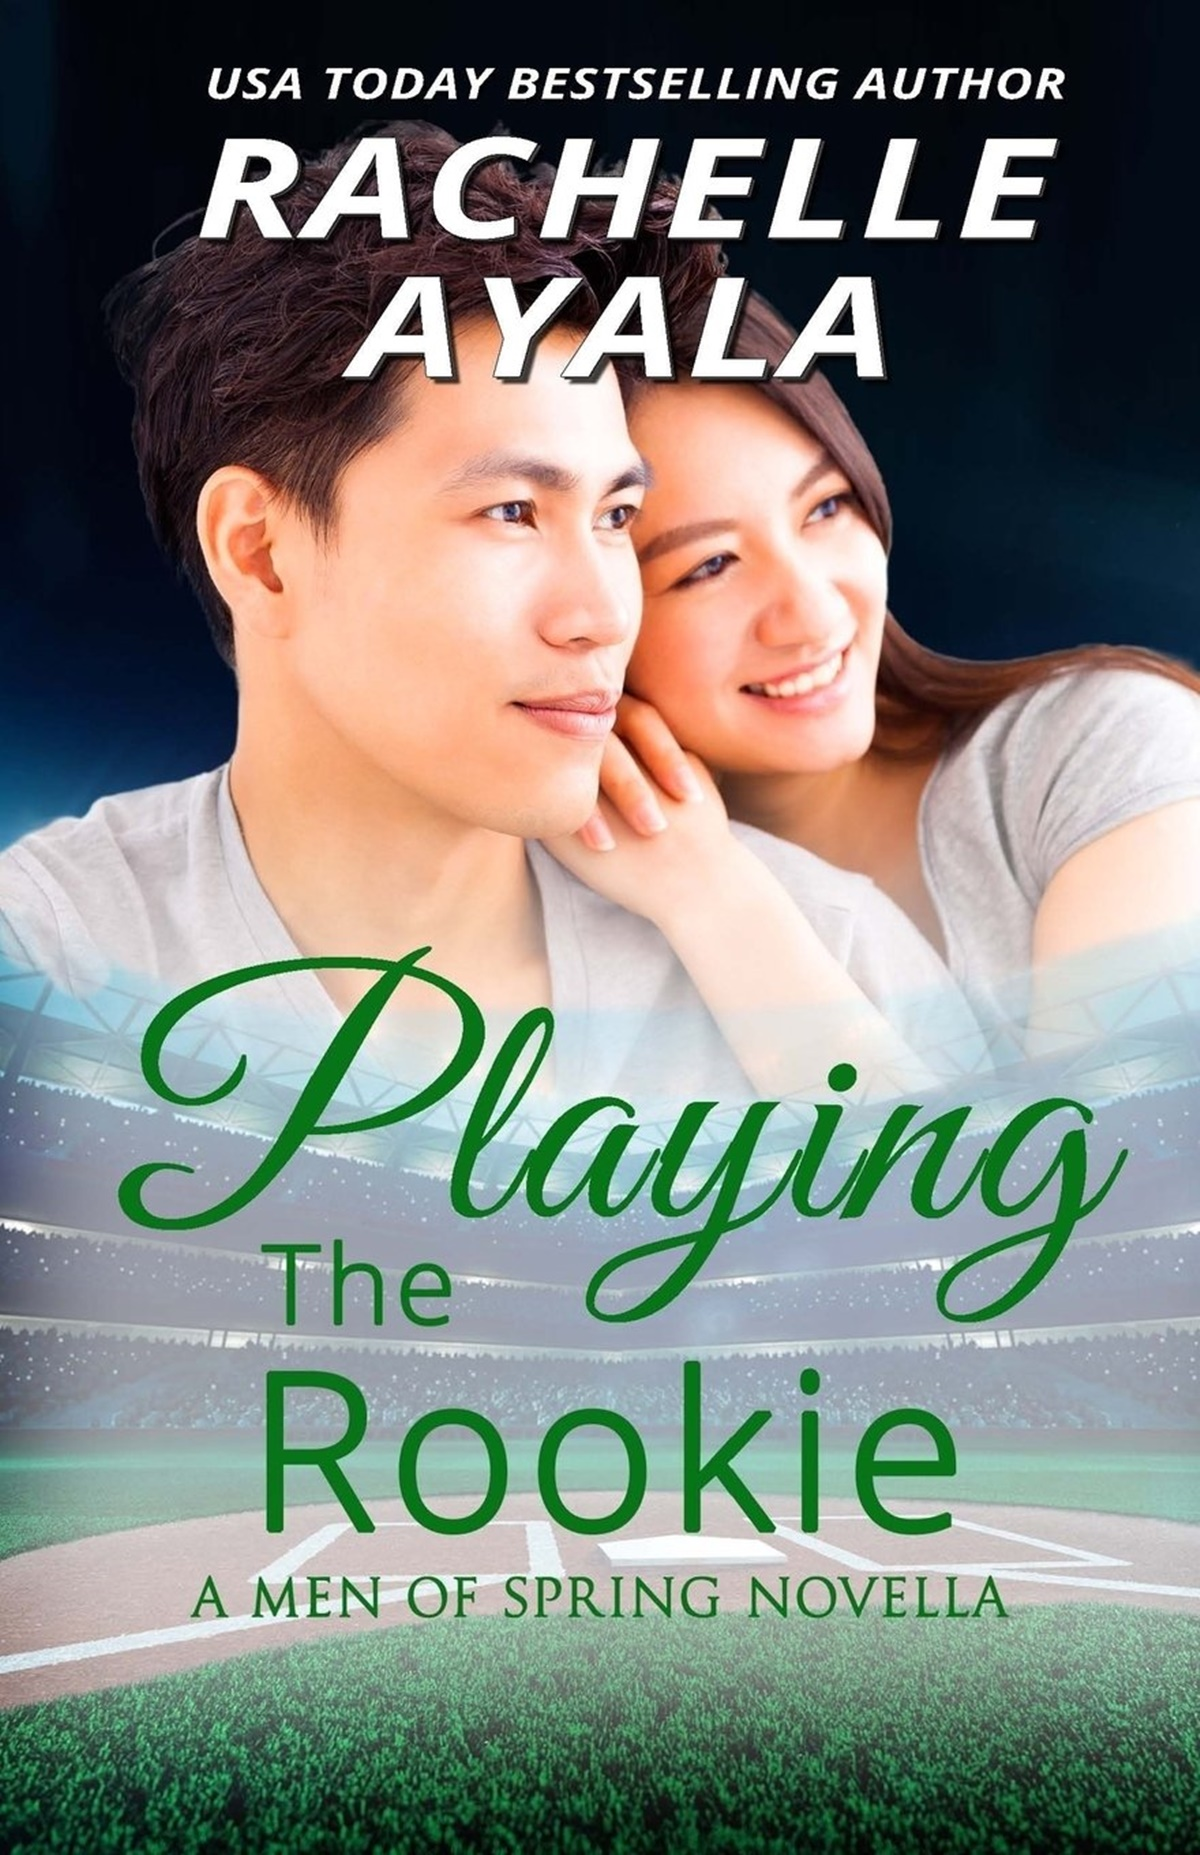 Baseball Romance Novels, cover of Playing the Rookies by Rachelle Ayala, books